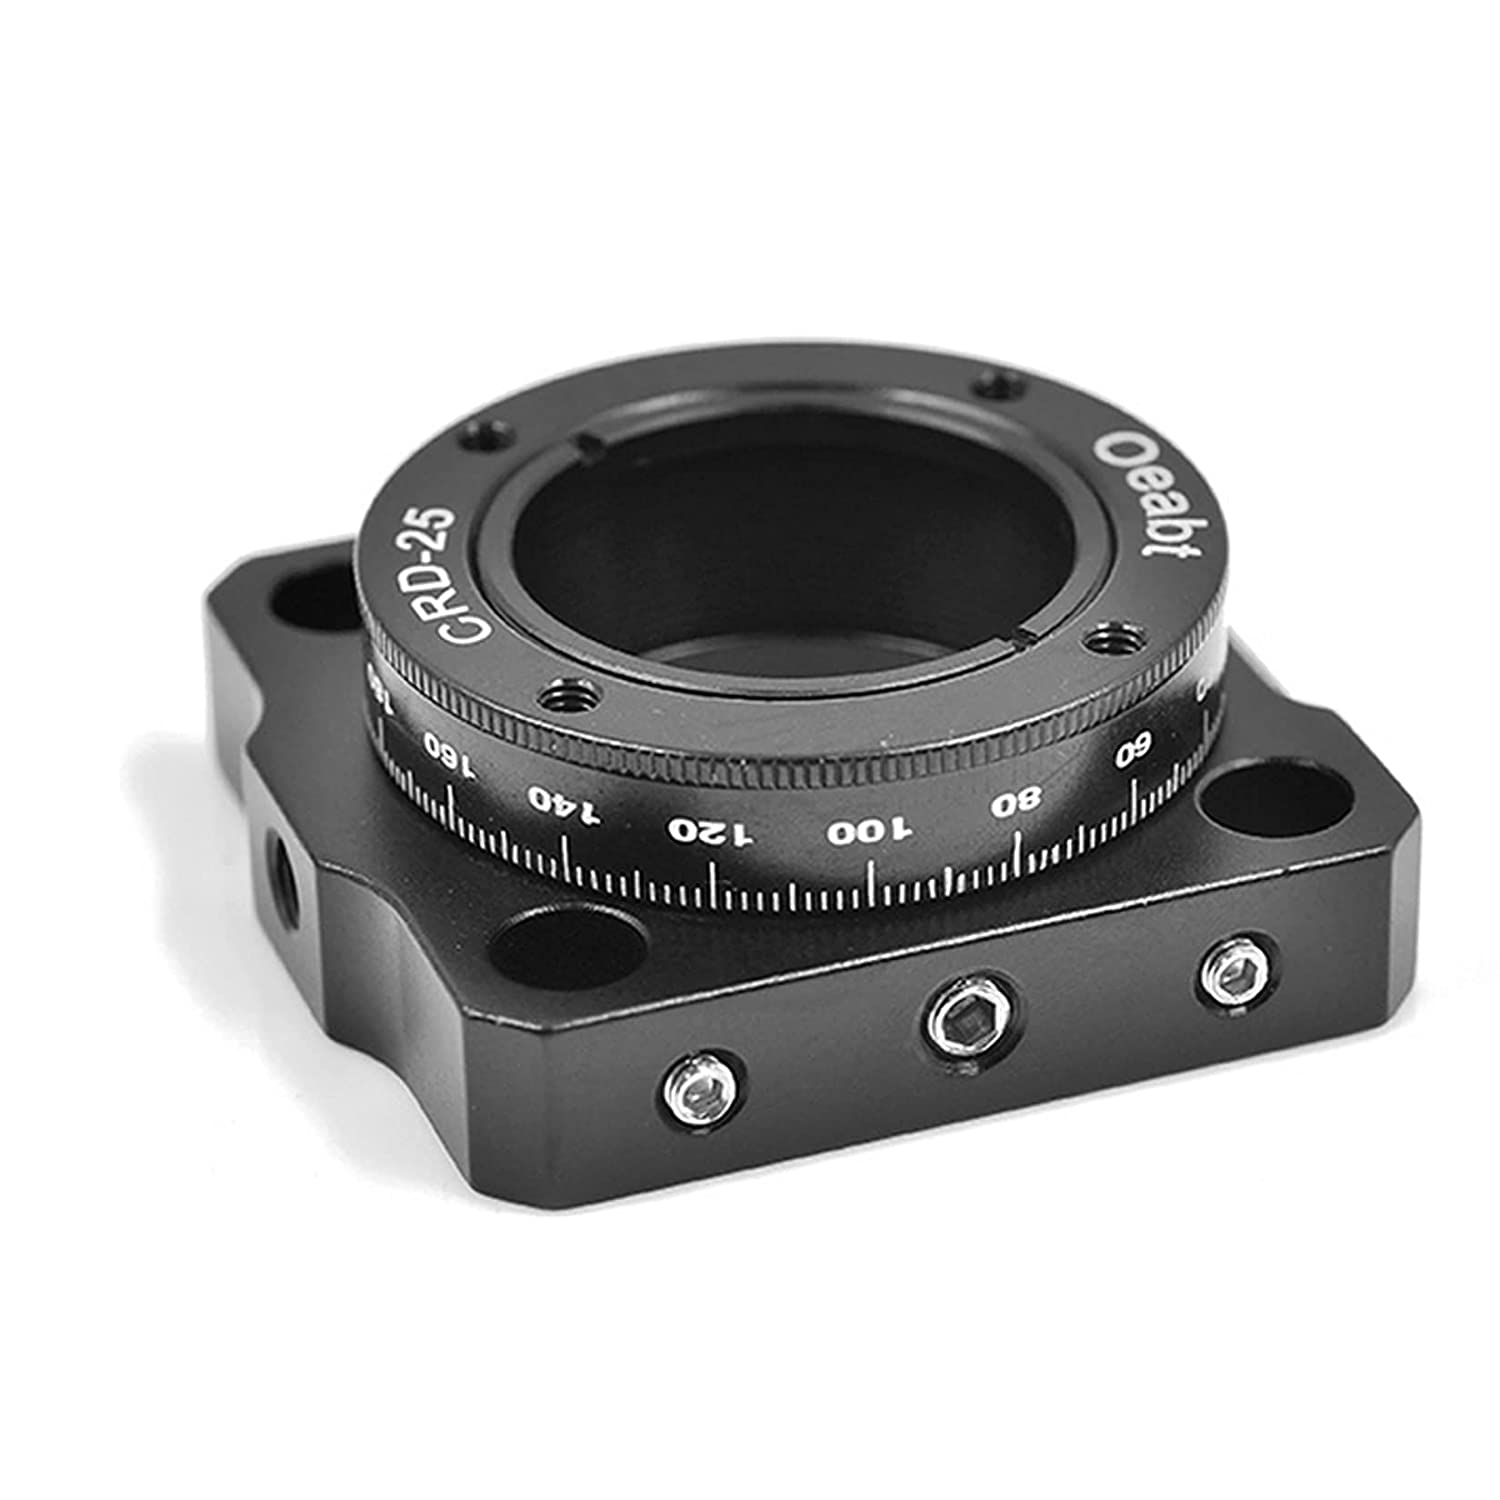 CRD-25 Index Rotation Mounting Frame latest System 30mm Cage Polarizer Sale item